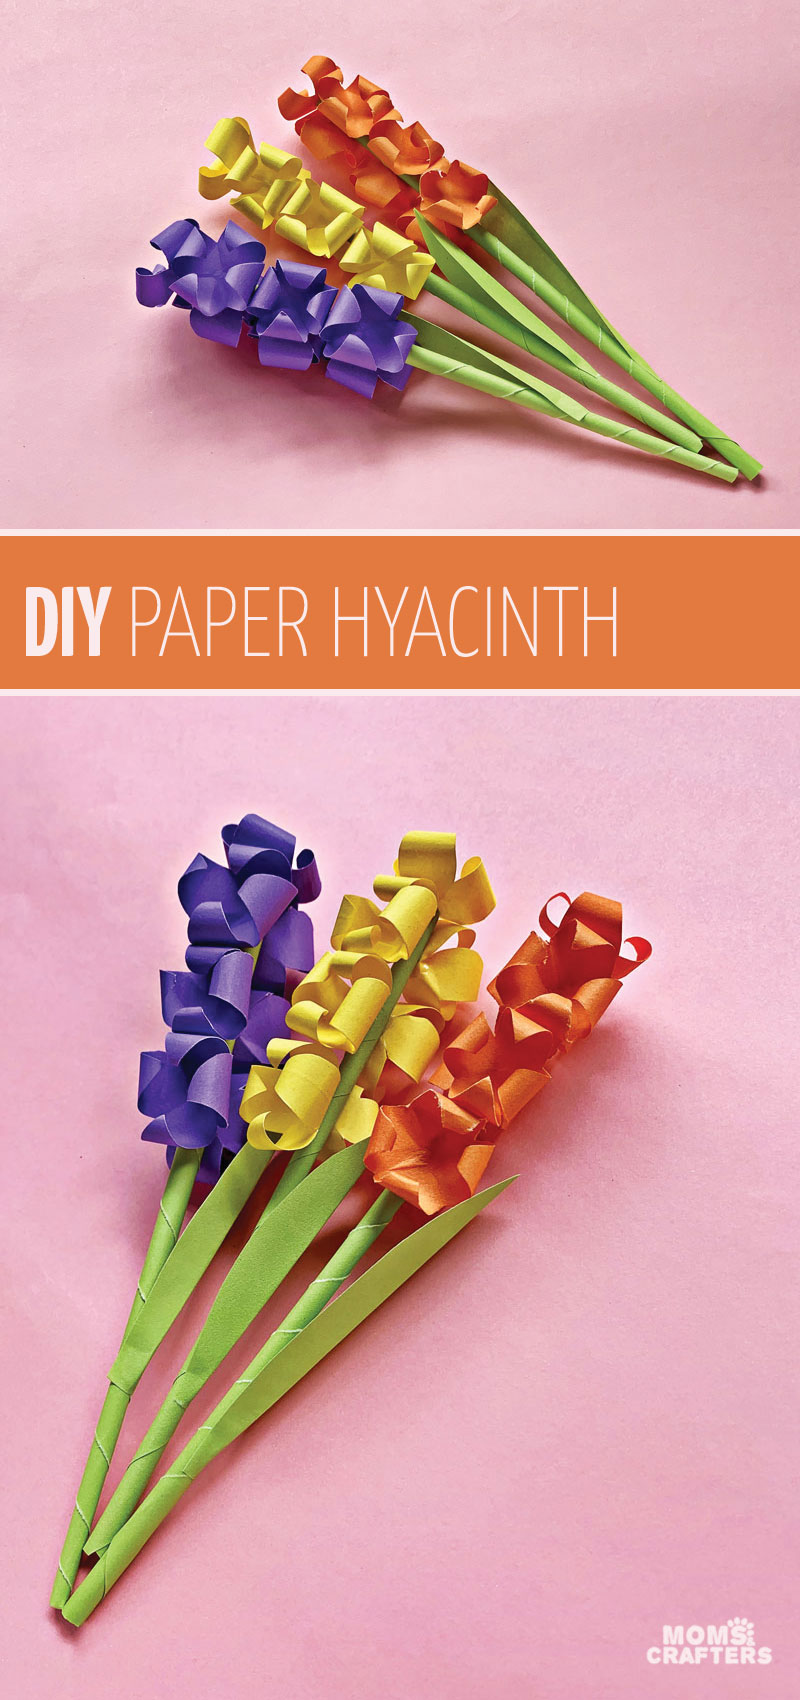 paper hyacinth flowers title image 1